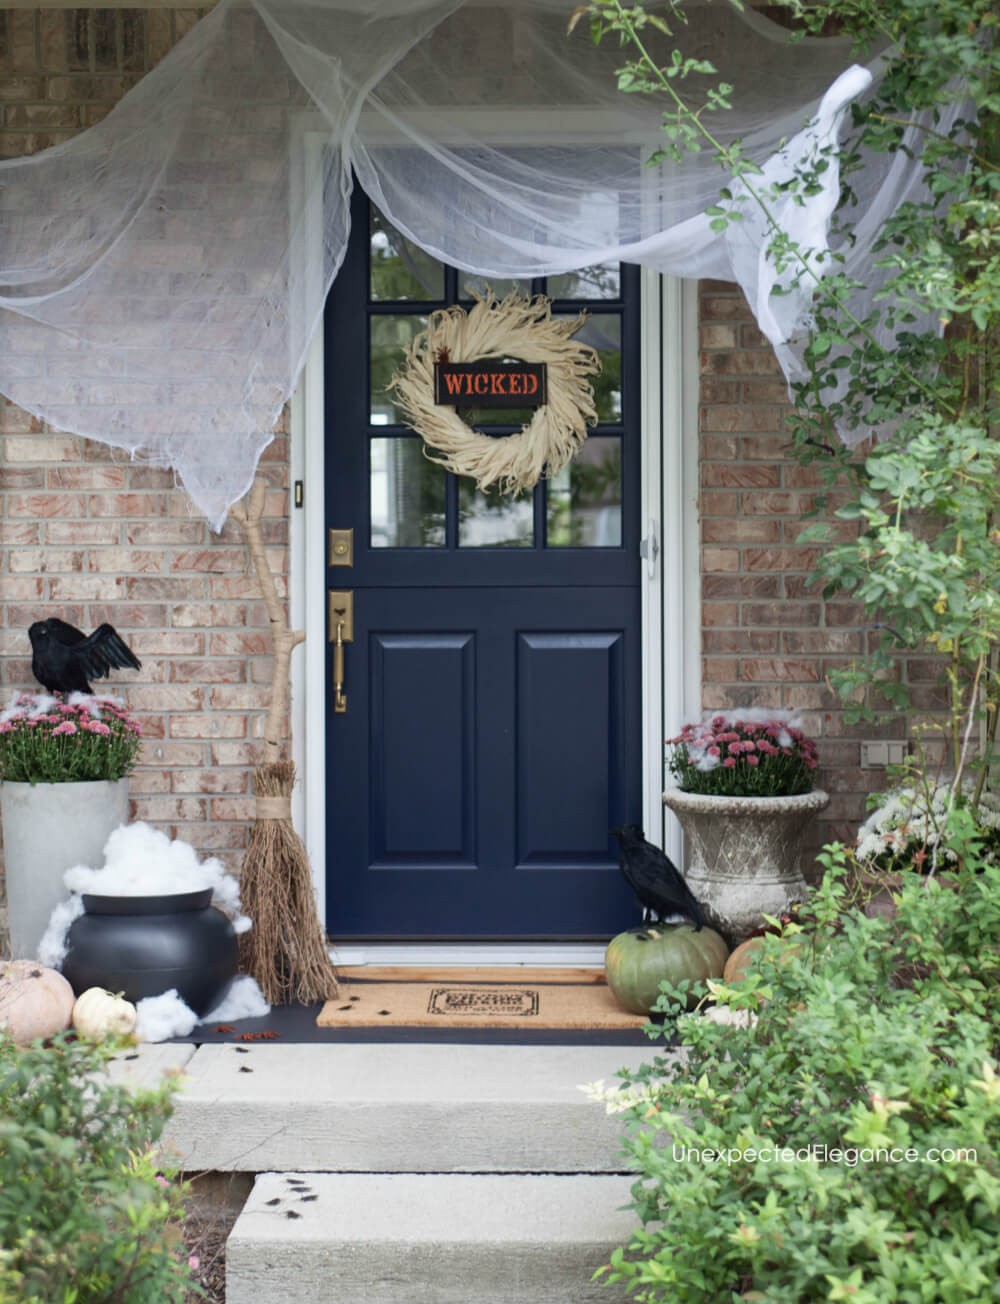 It's finally fall! Check out this porch decked out for Halloween with a WICKED theme!